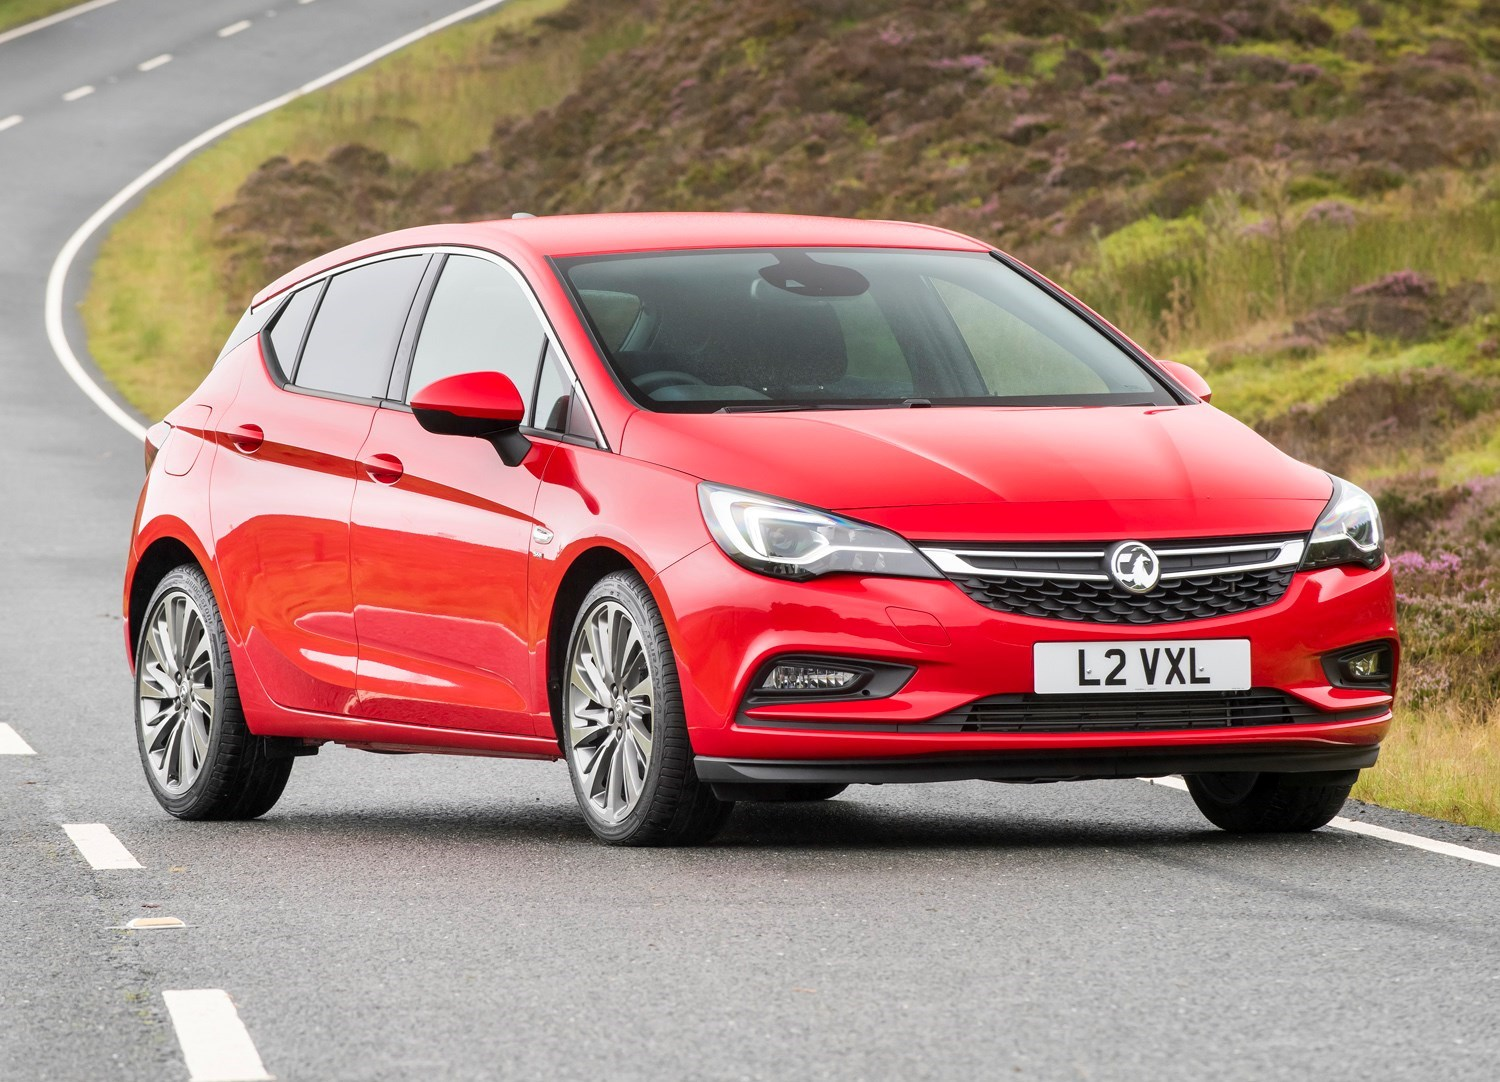 The best cheap family cars - Vauxhall Astra Hatchback